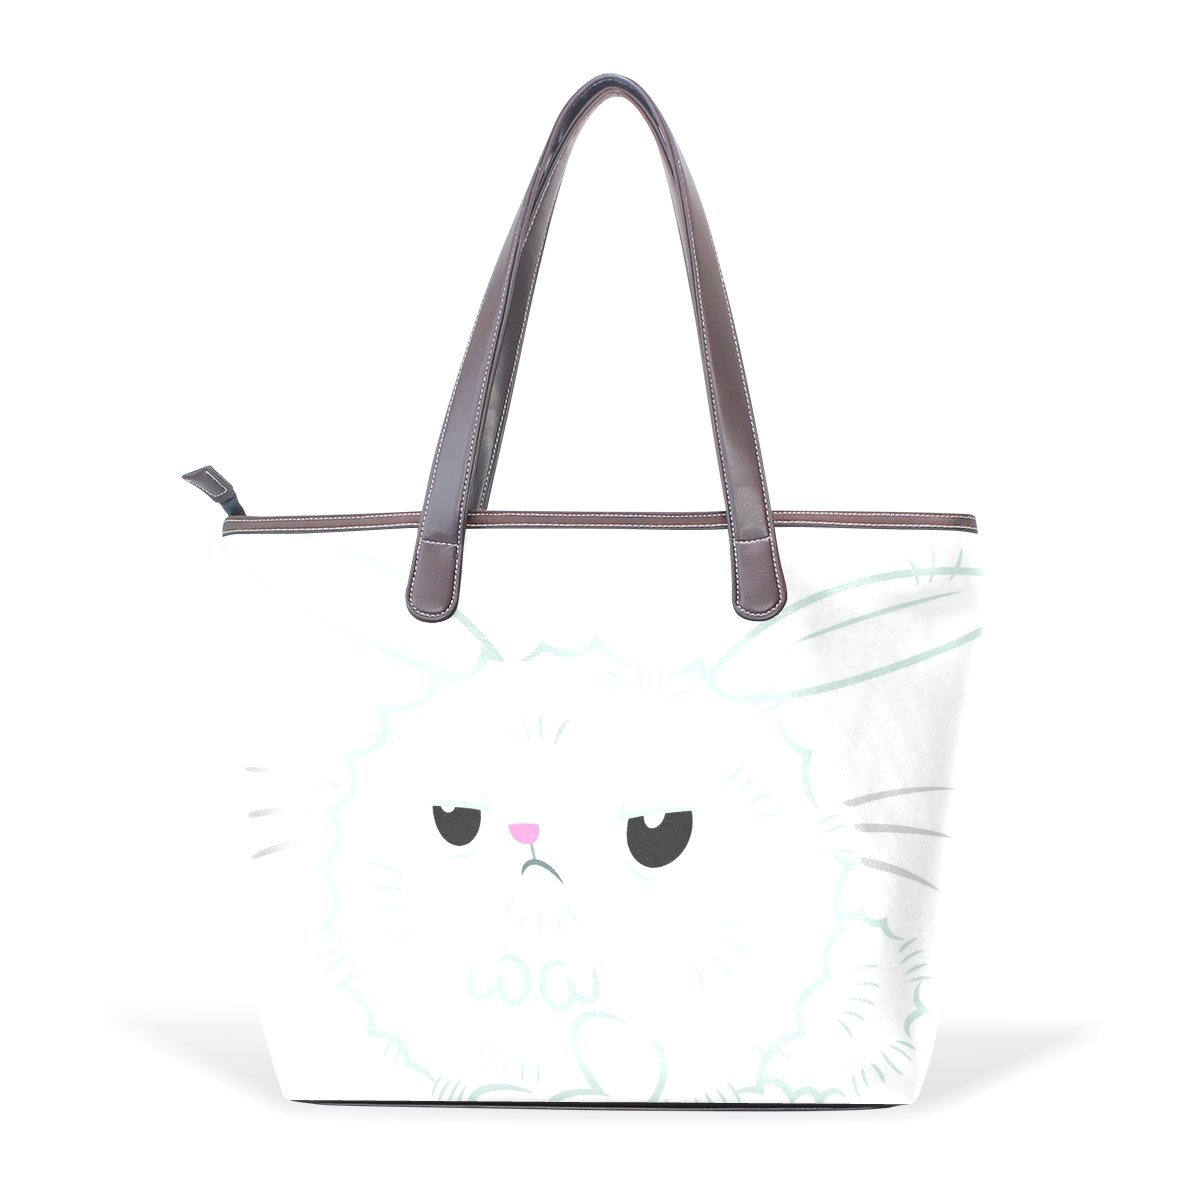 Mr.Weng Household Angel Bunny Lady Handbag Tote Bag Zipper Shoulder Bag